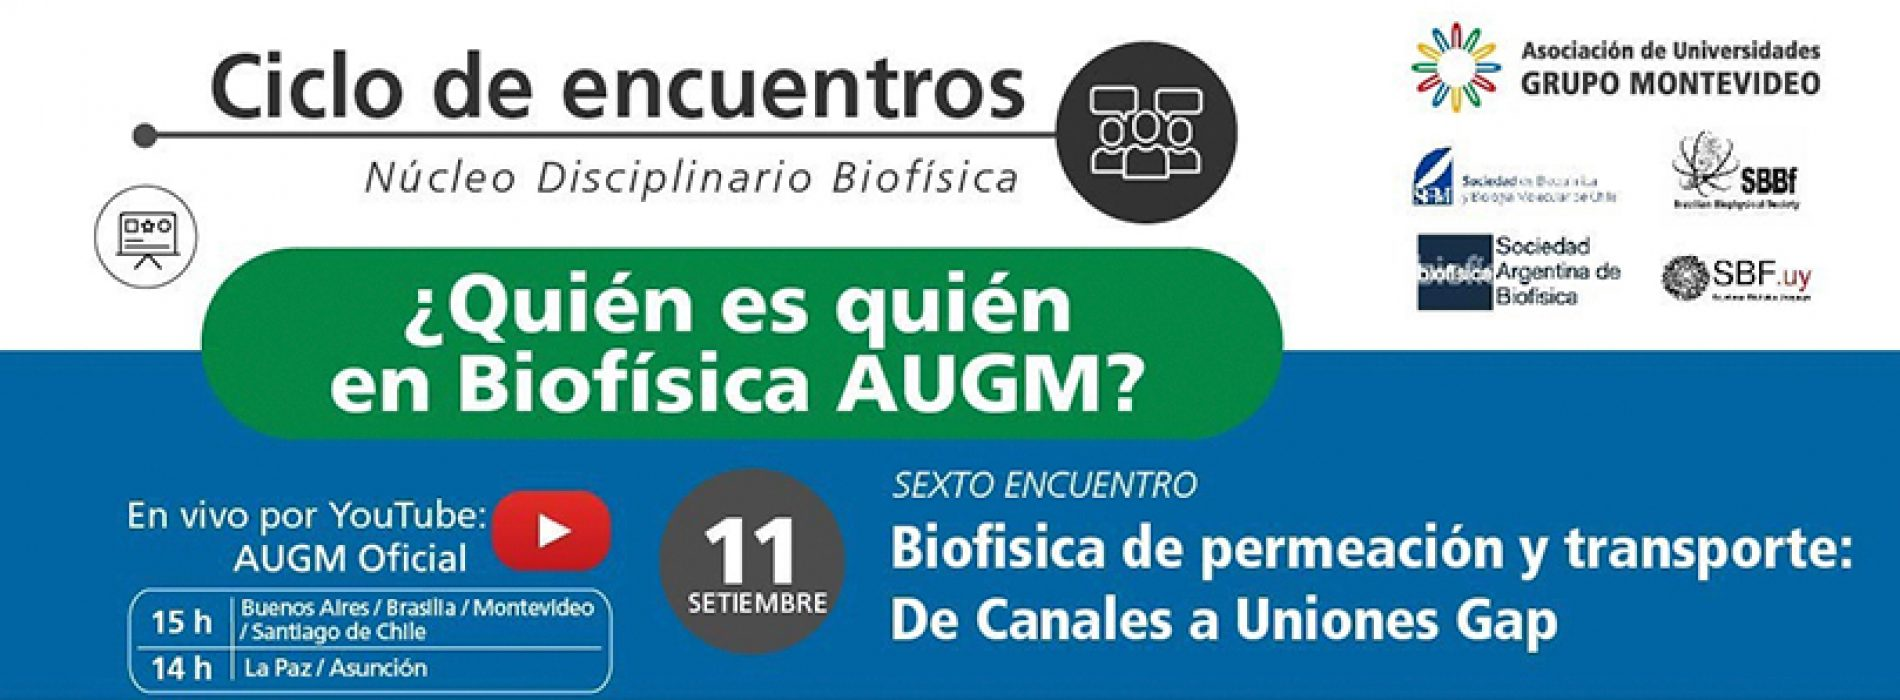 Meeting cycle What is what in AUGM Biophysics?